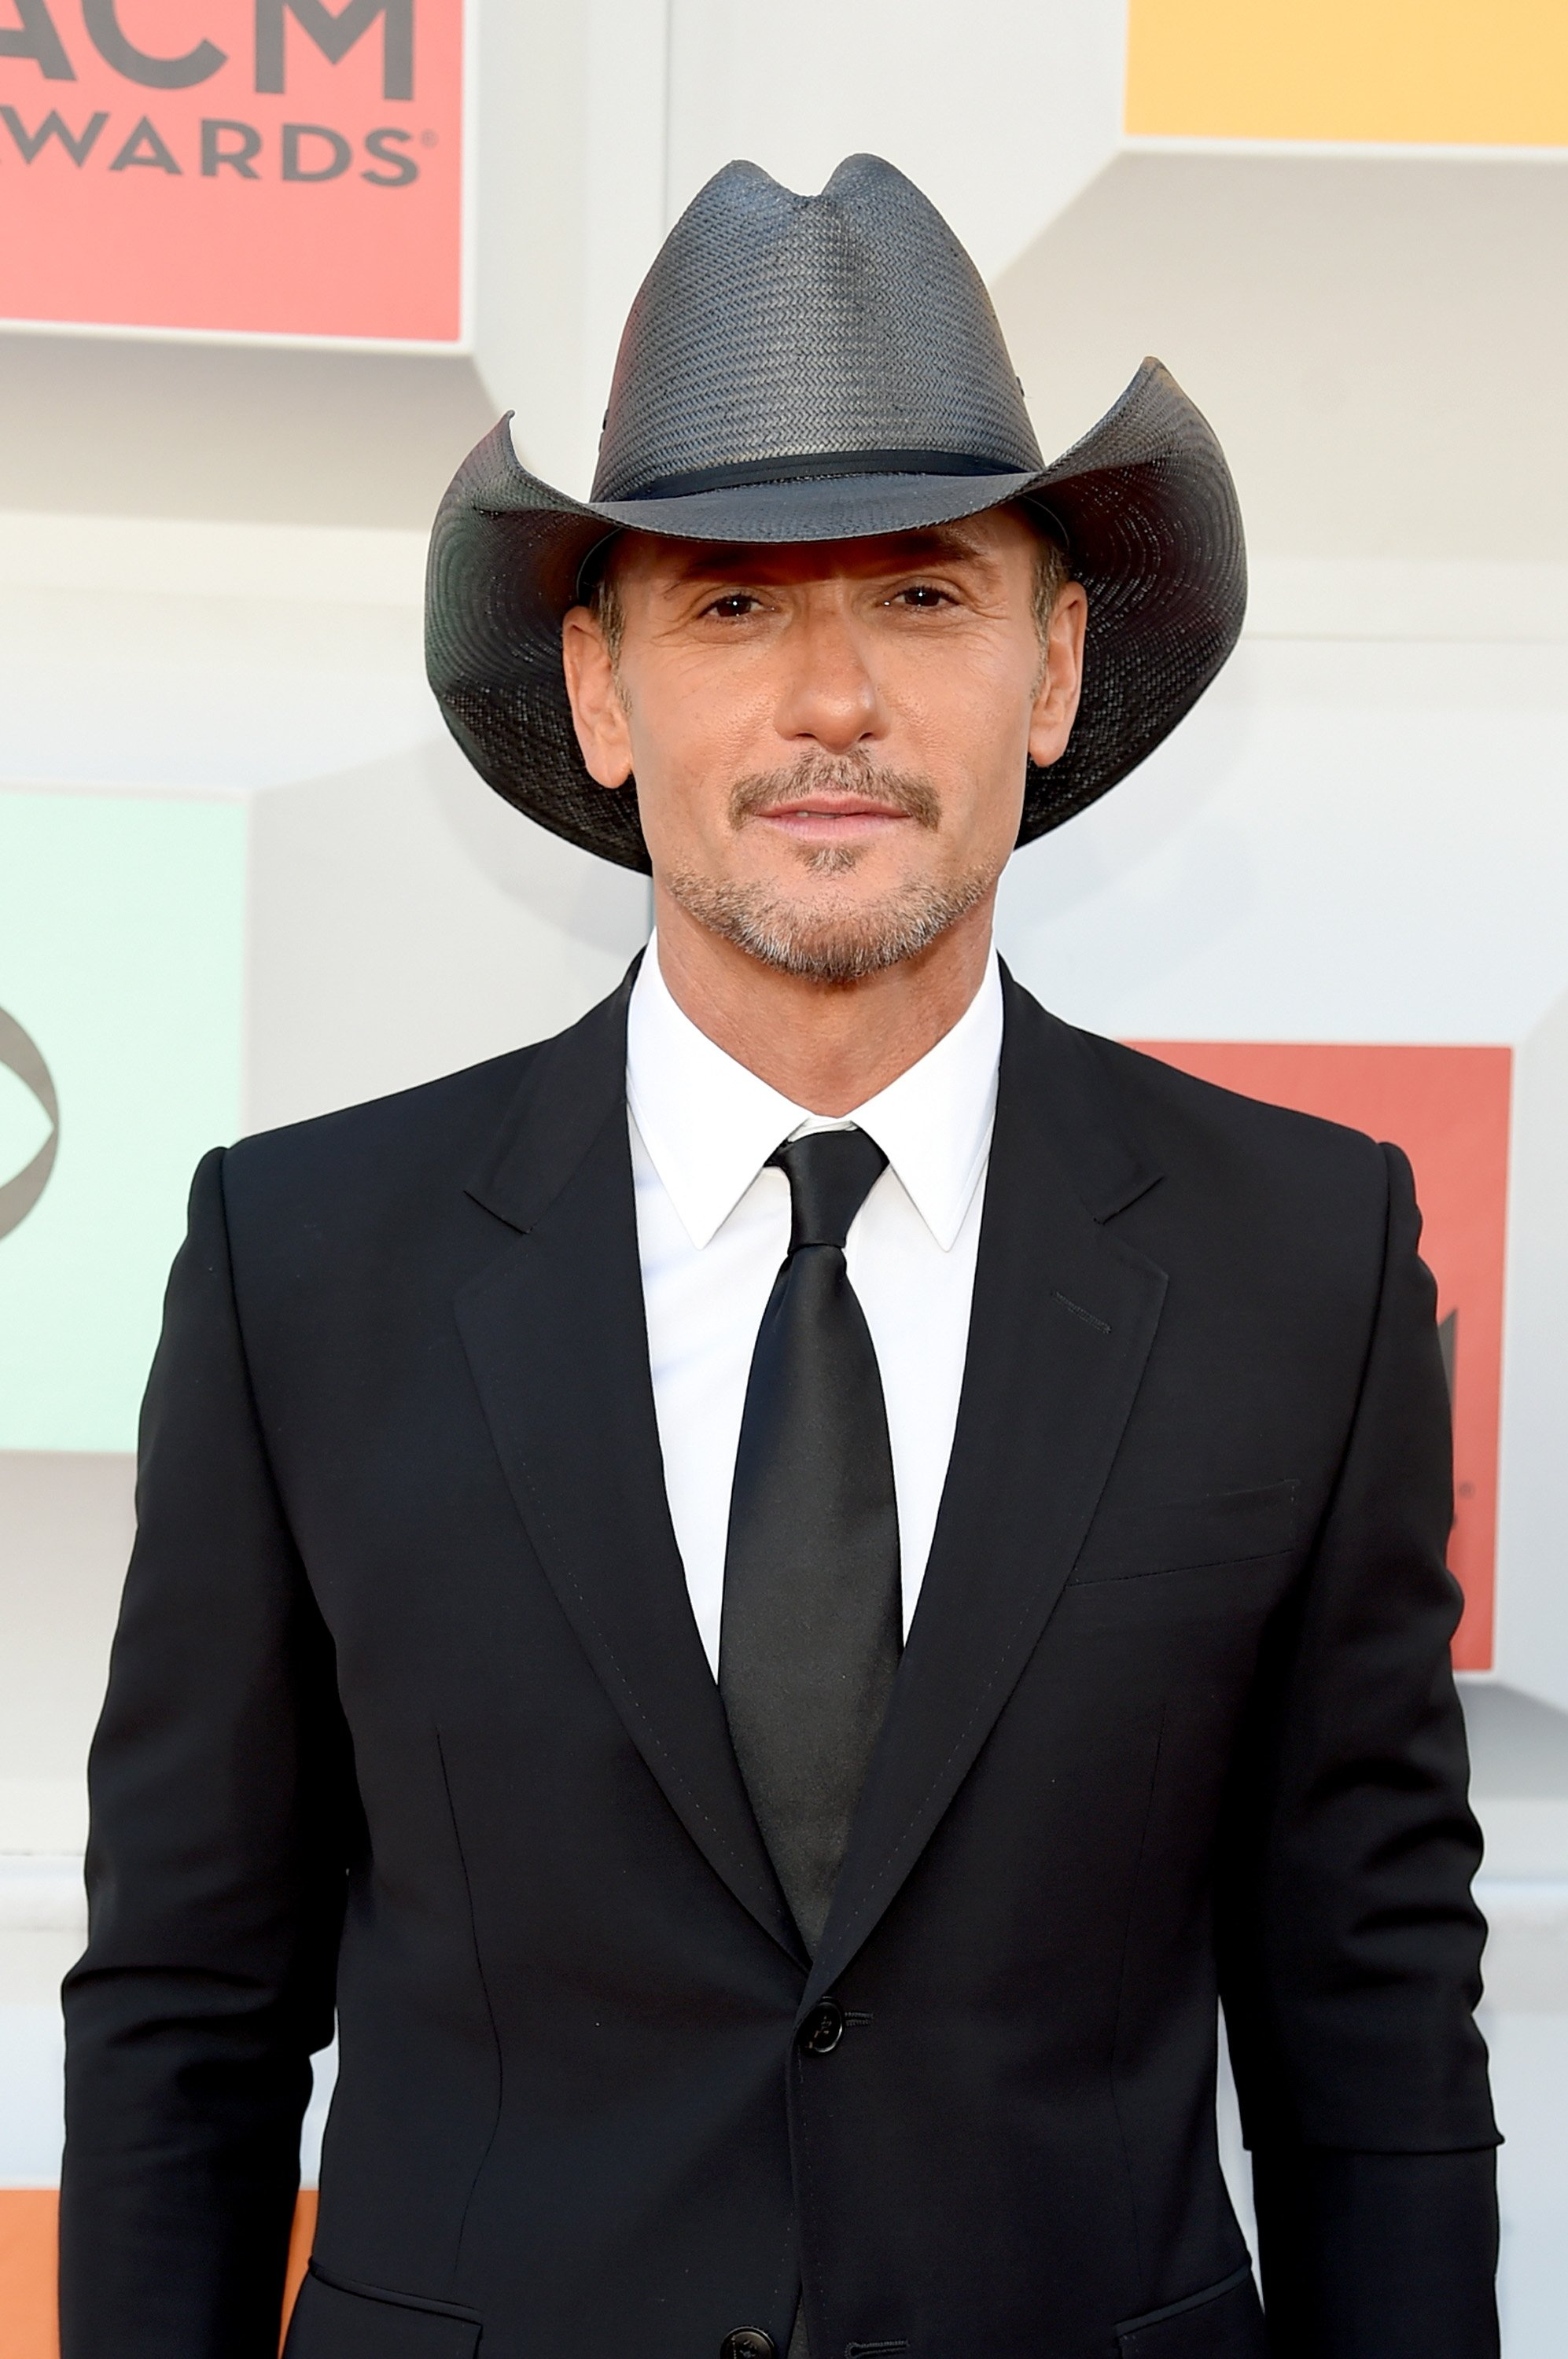 Tim McGraw attends the 51st Academy of Country Music Awards at MGM Grand Garden Arena on April 3, 2016. | Photo: GettyImages